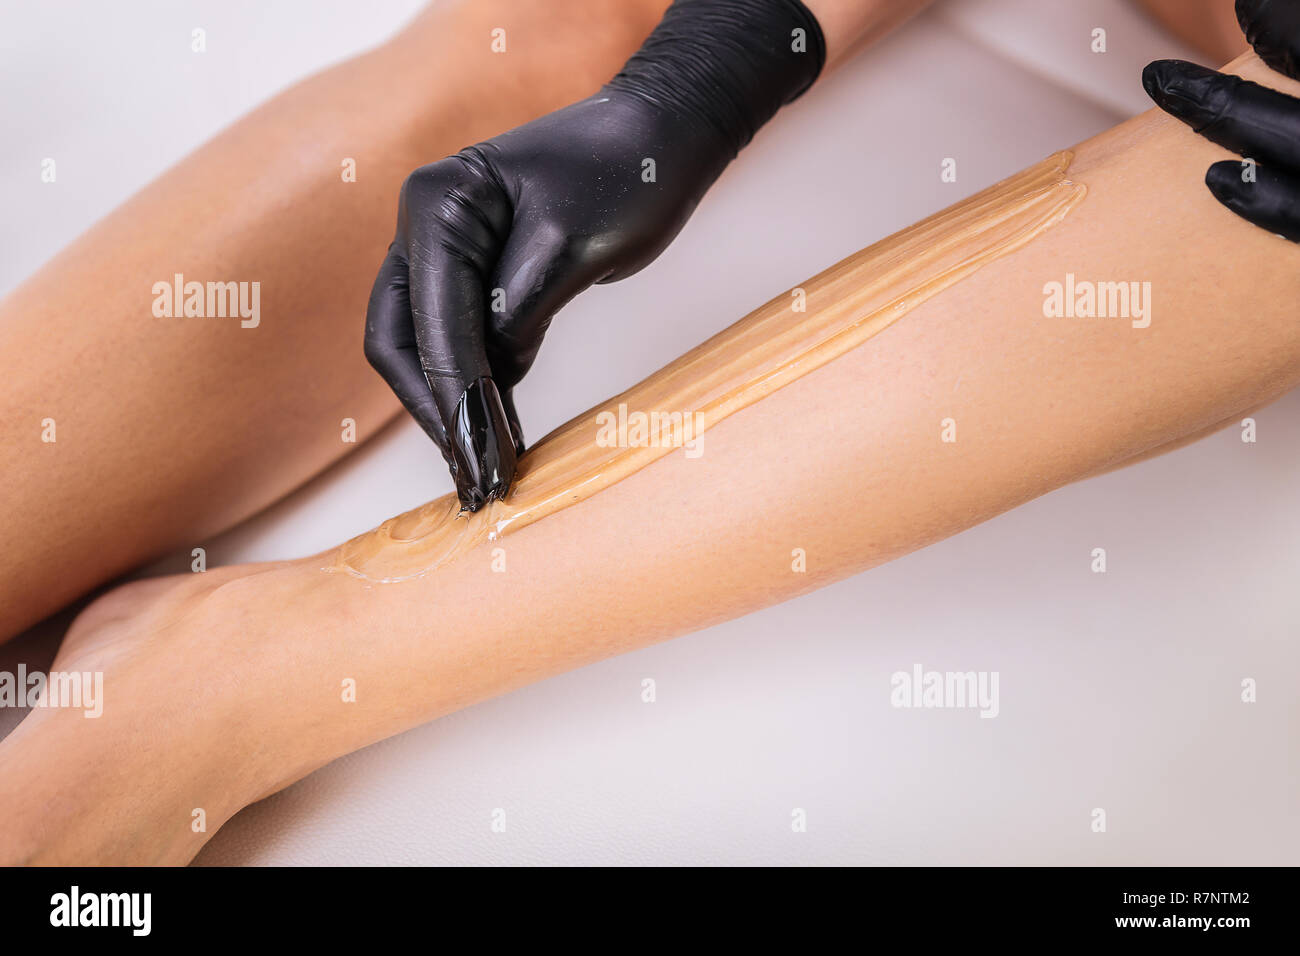 Master in hair removal making sugaring for her client lying on bed Stock Photo